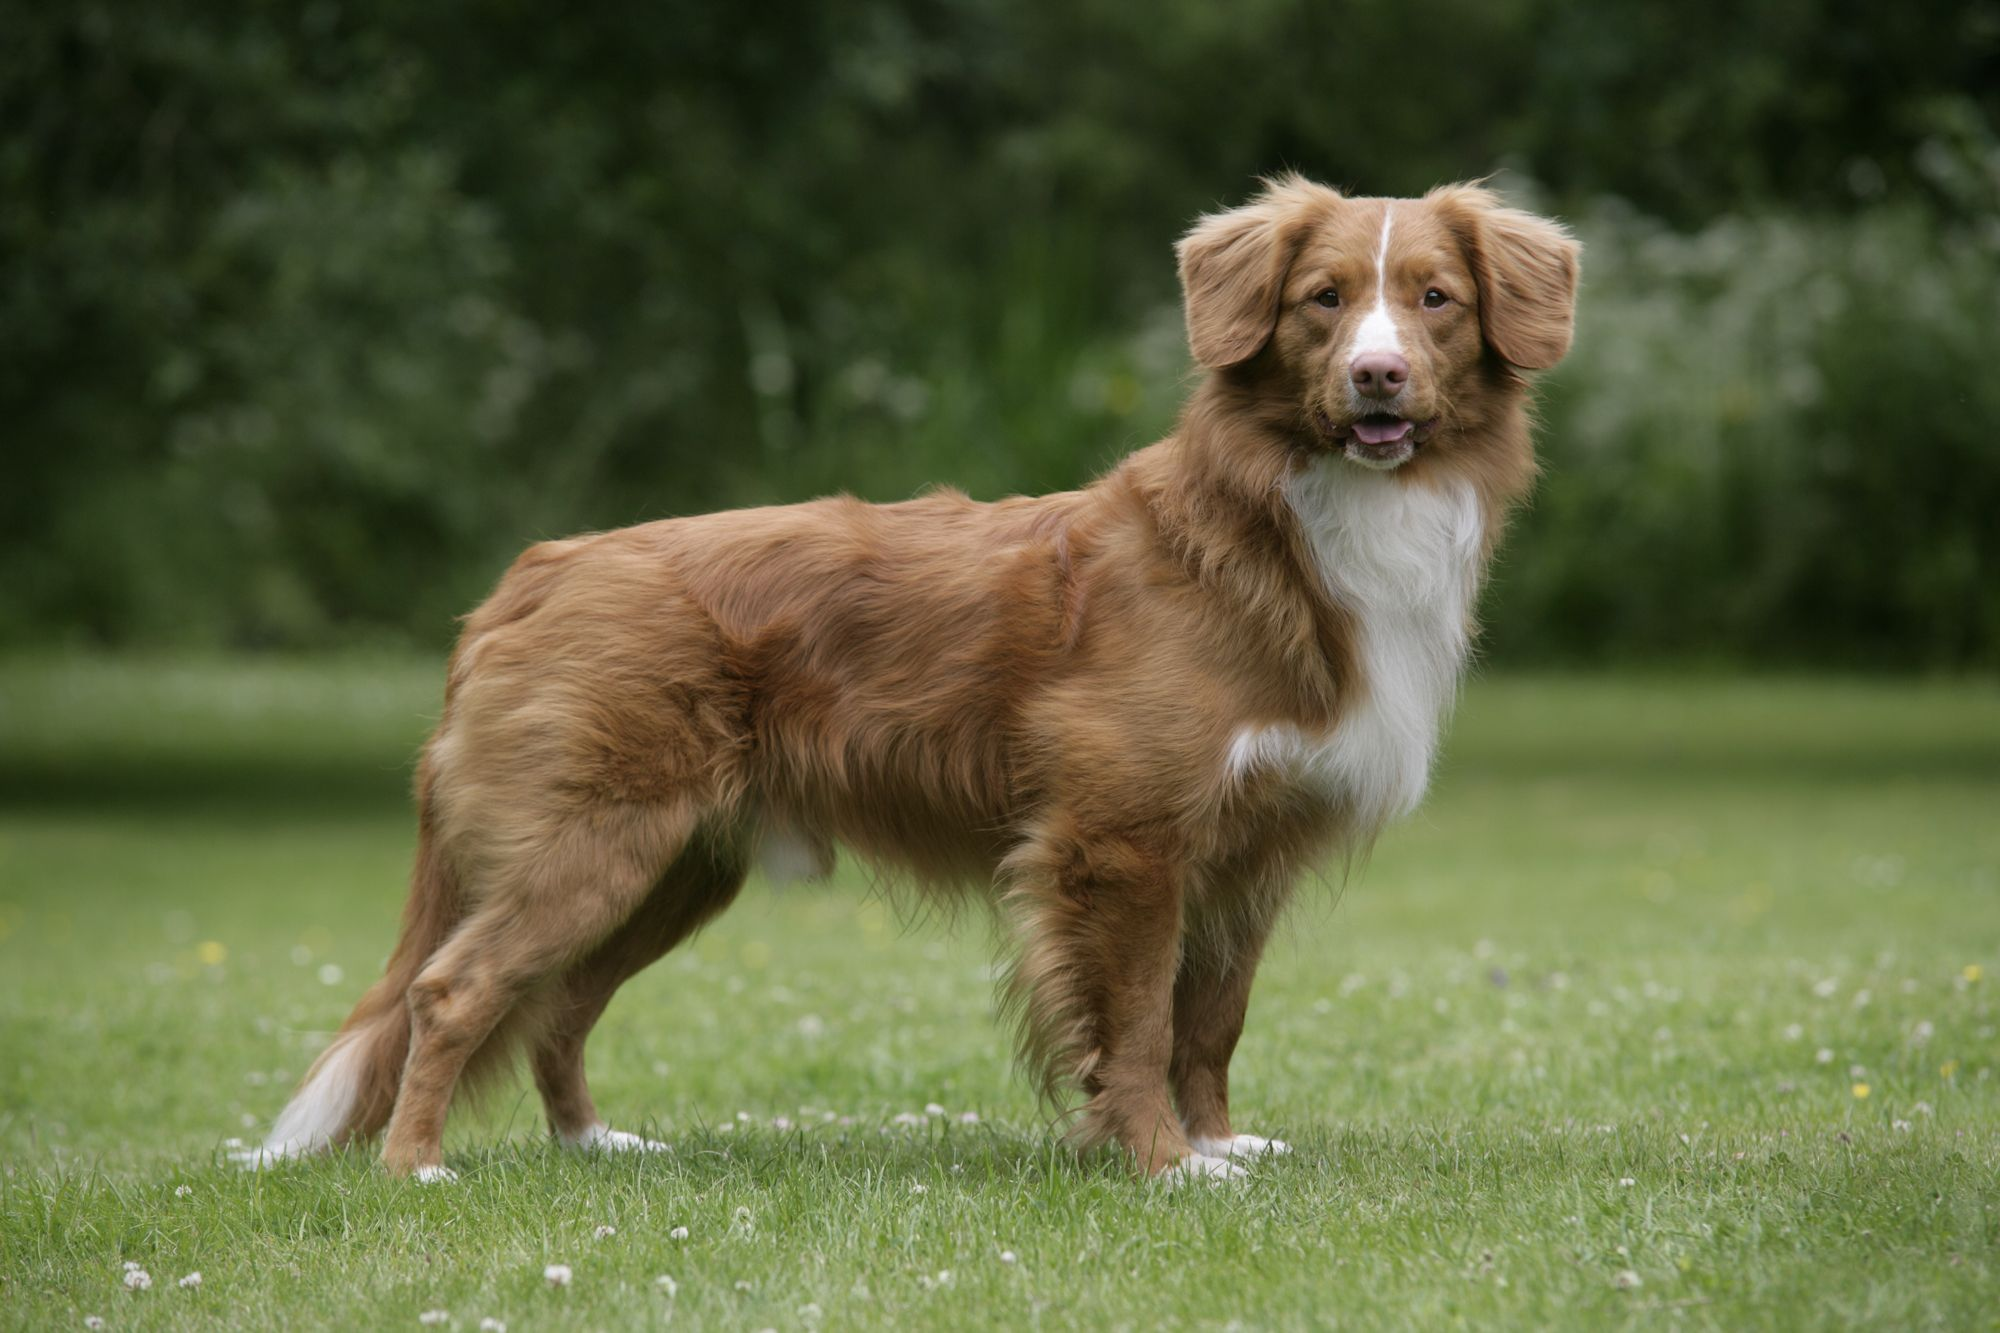 Whatafy We Have All The Answers For You Nova Scotia Duck Tolling Retriever Cute Dogs Breeds Dog Breeds